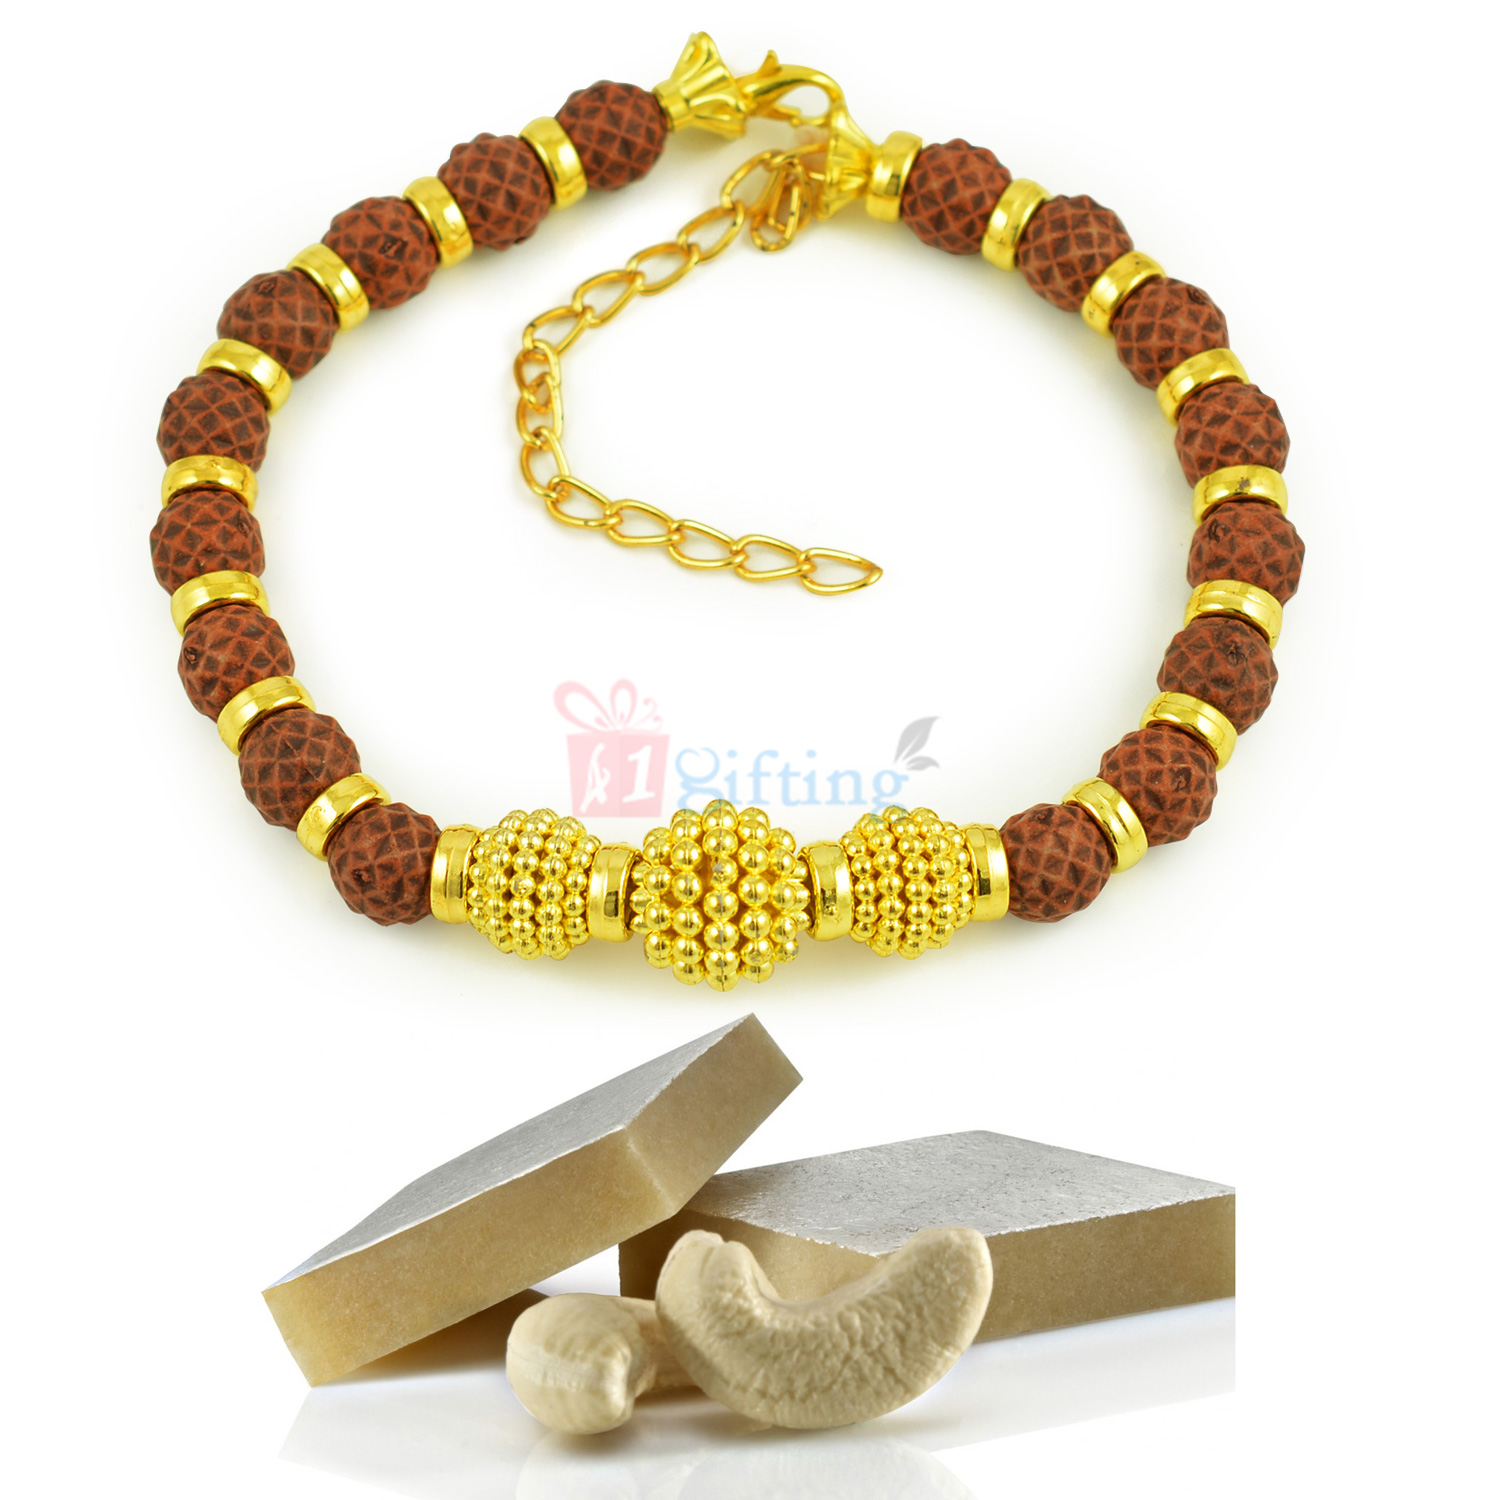 Beautiful Rudraksha Golden Bracelet with Healthy Kaju Katli Sweet